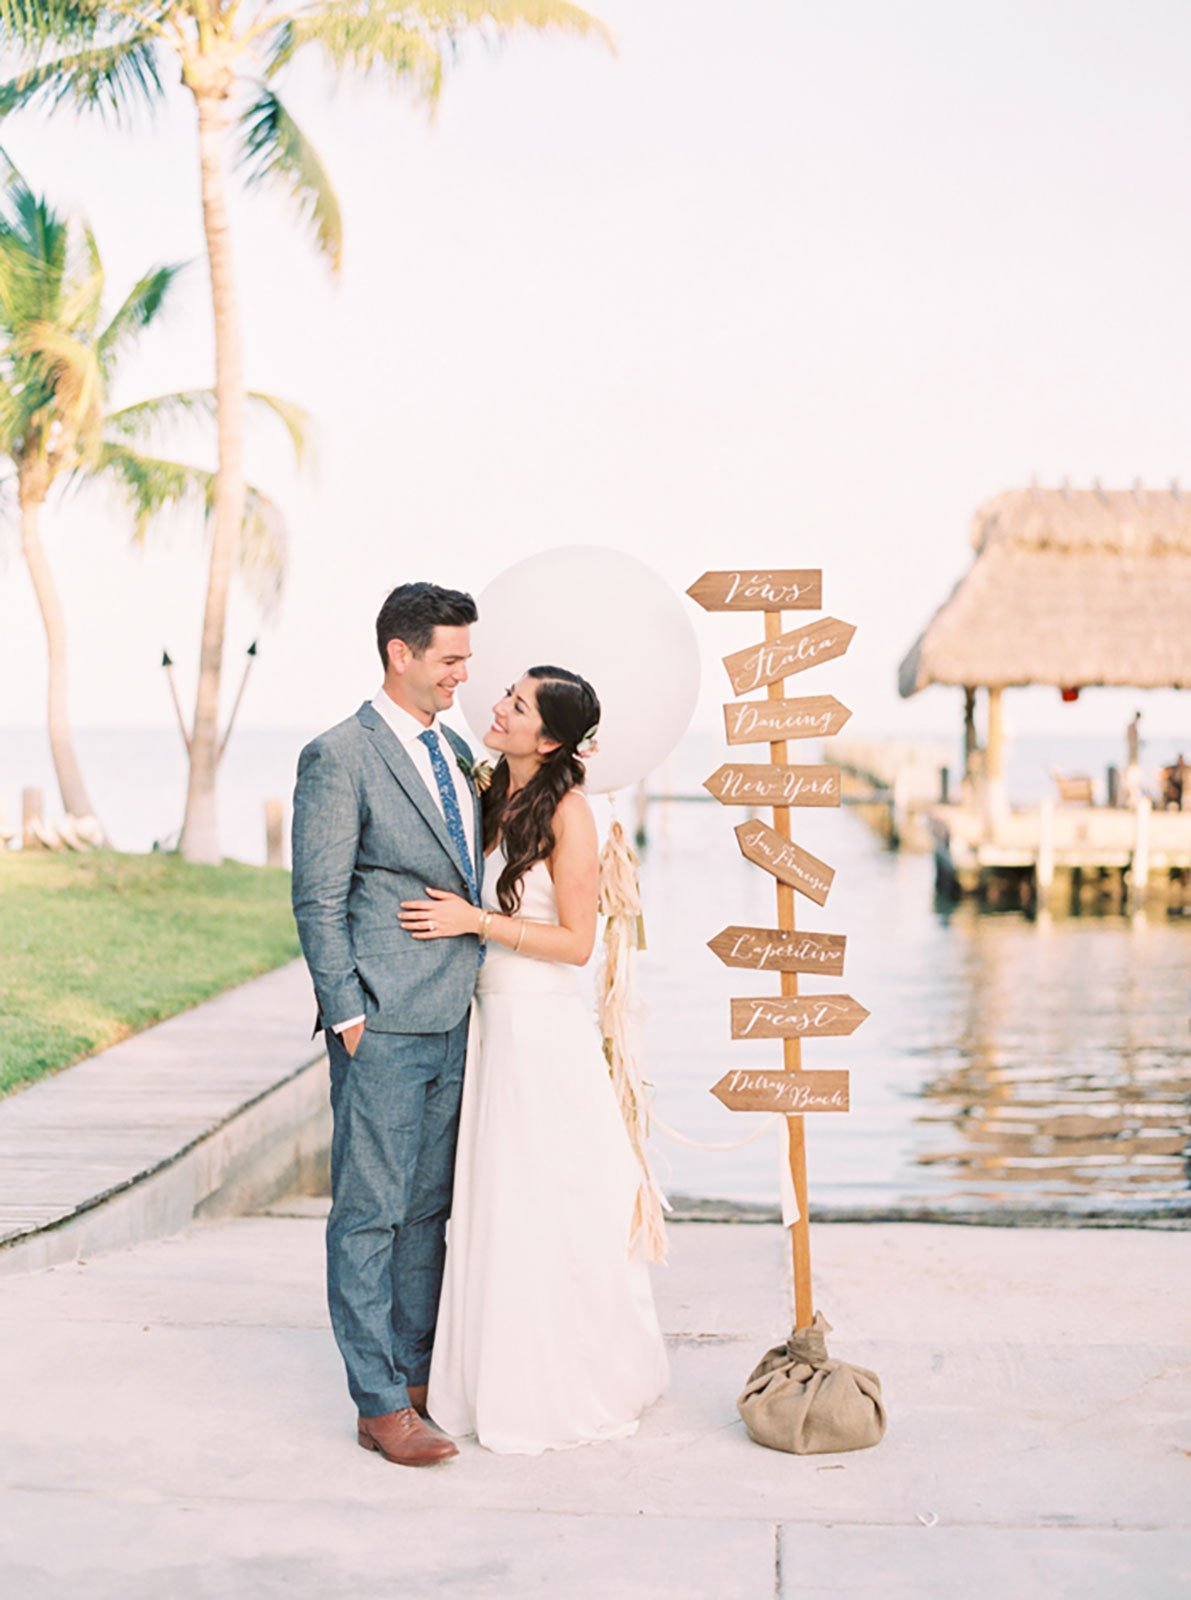 Reception directional sign for a destination wedding at The Caribbean Resort in Islamorada